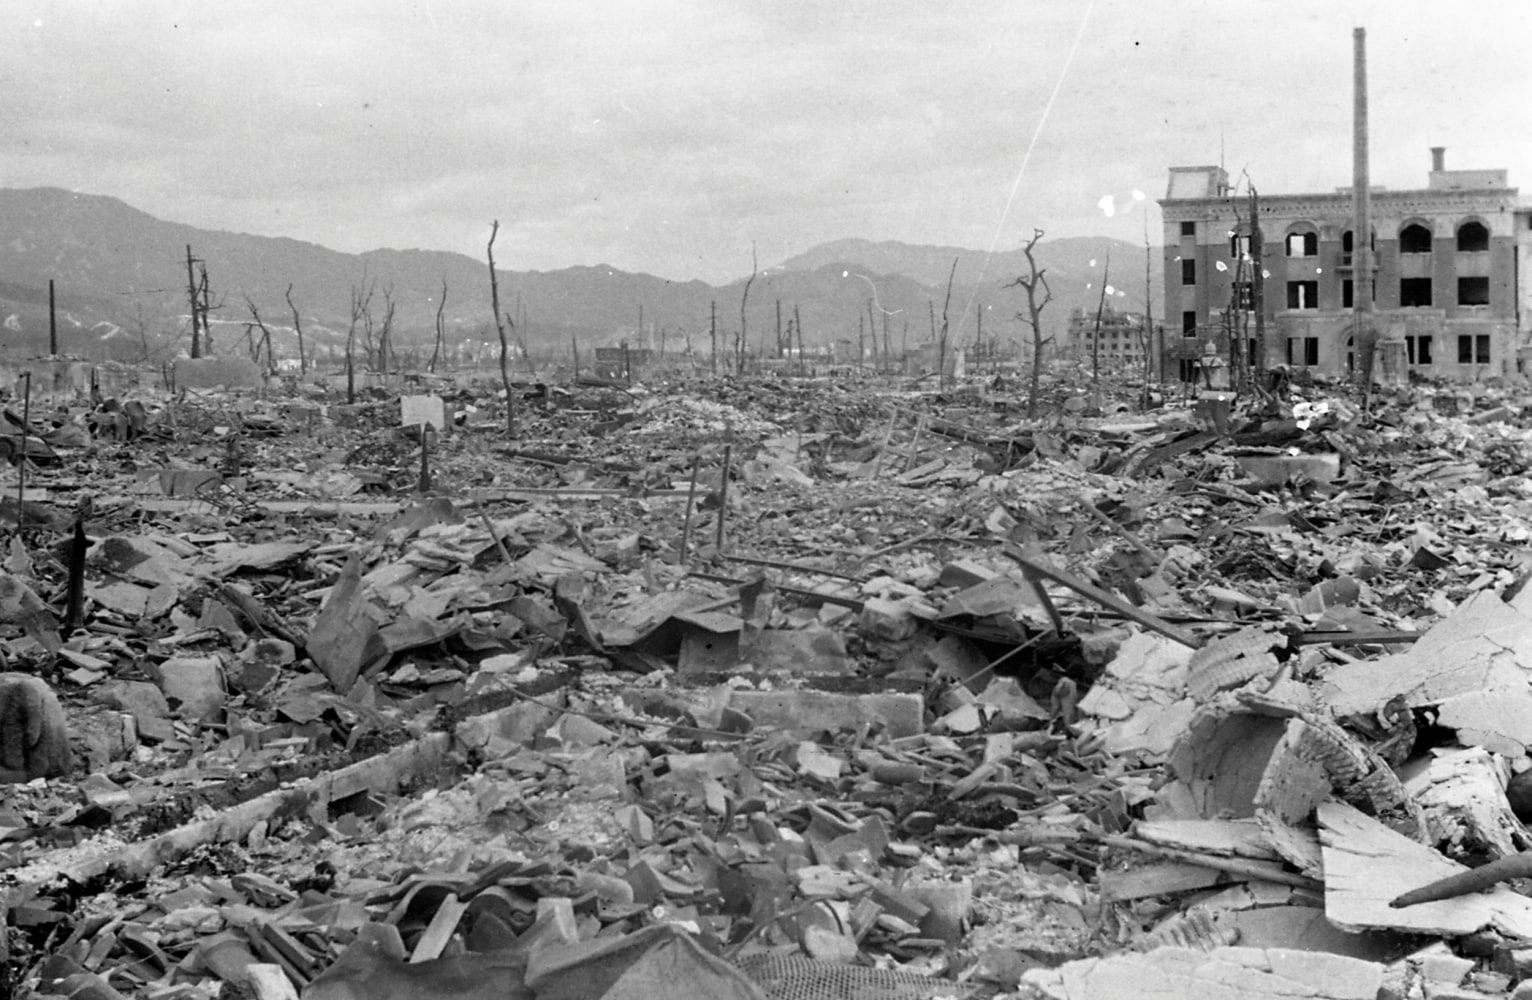 truman s decision of hiroshima and nagasaki Ver vídeo  richard thornton talks about president truman's decision to drop the atomic bomb on hiroshima and nagasaki to end the pacific war.